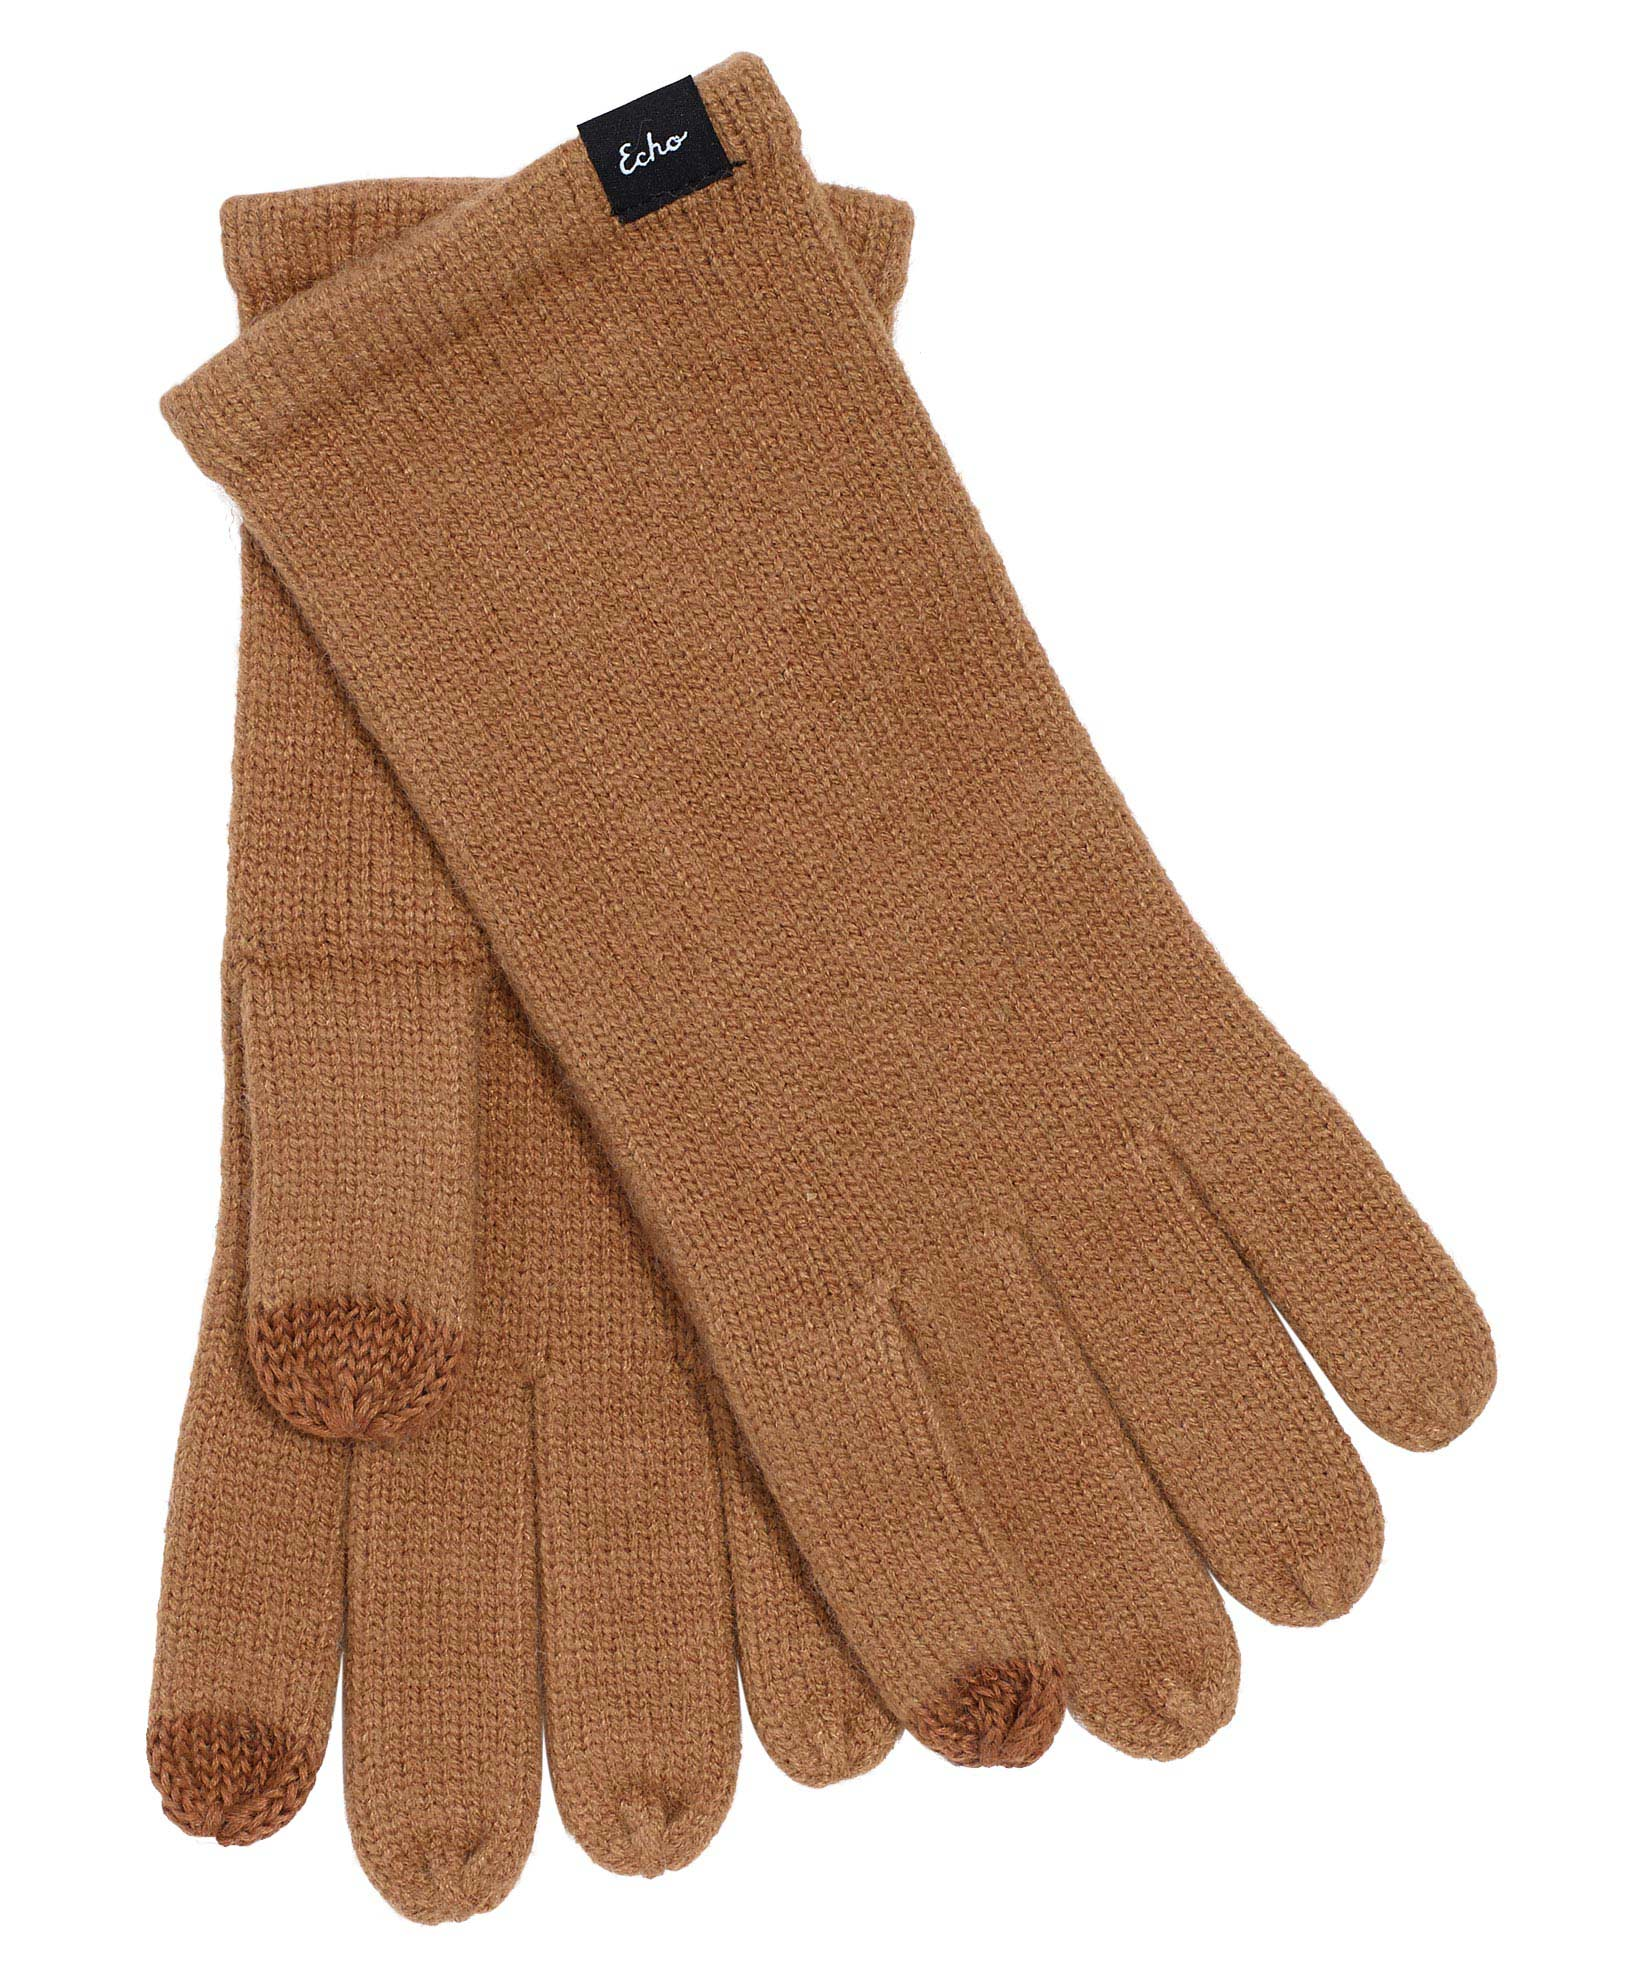 Camel - Echo Knit Touch Glove